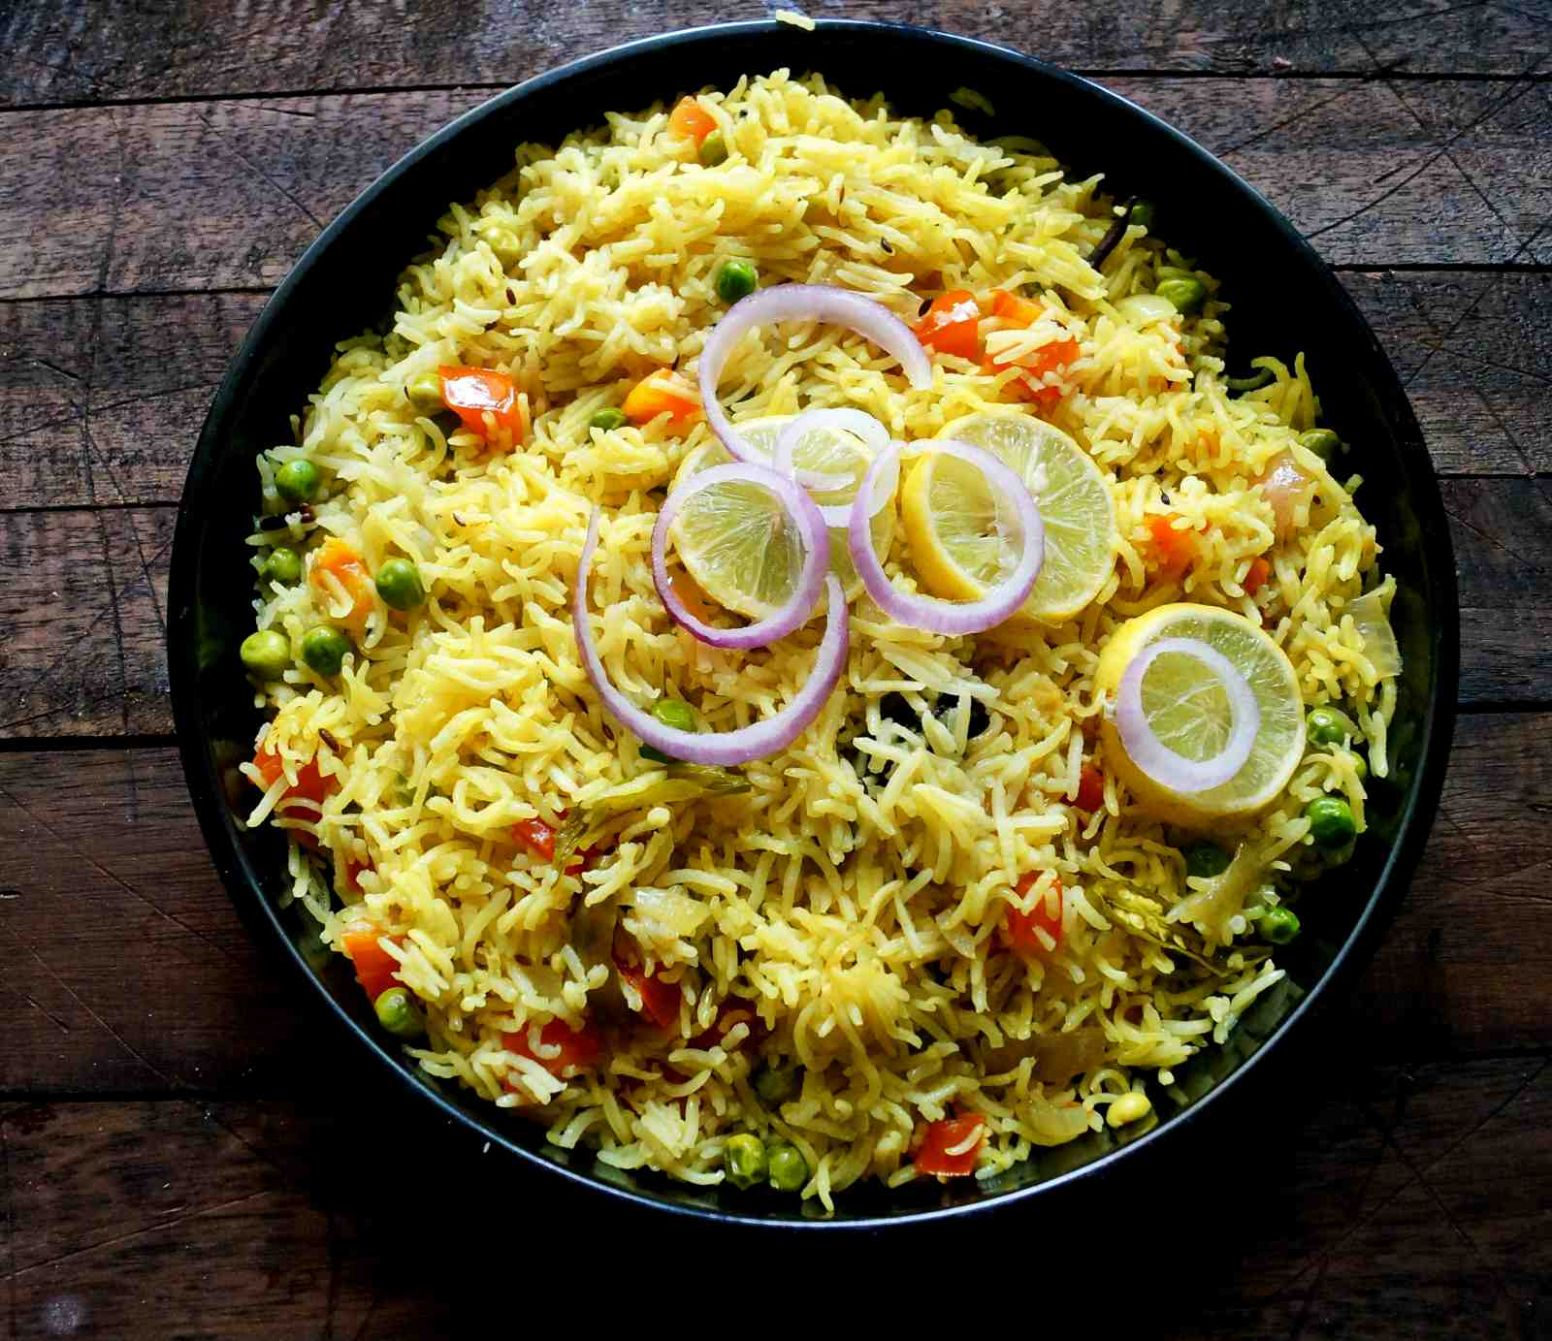 Nepalese Vegetable Pulao Recipe - Recipes Rice For Pulao